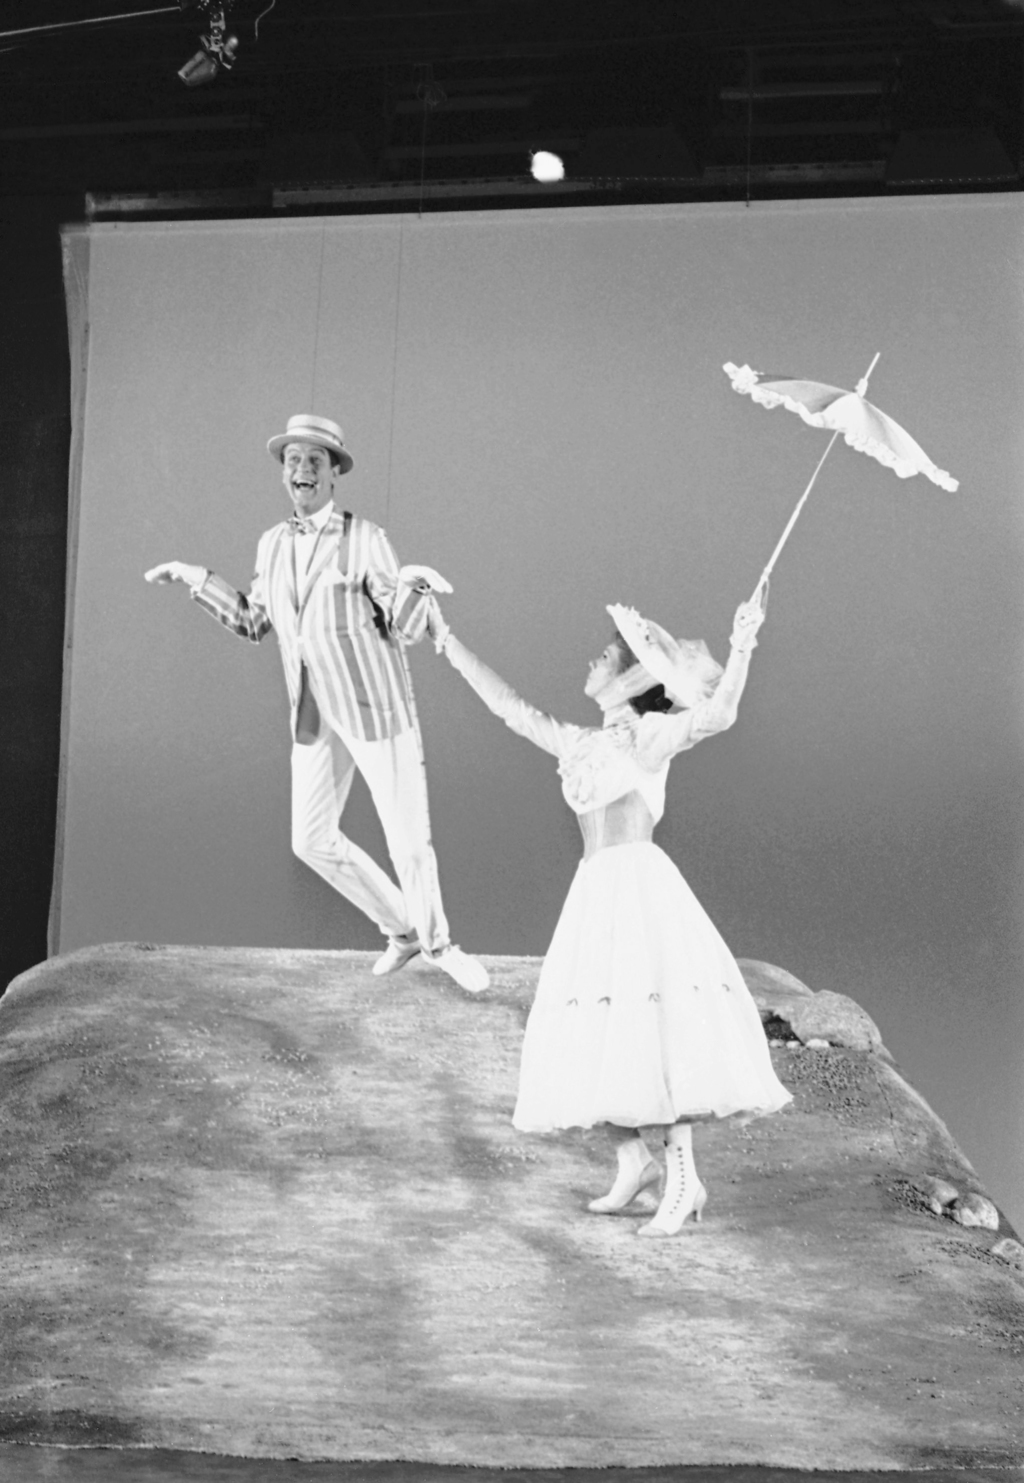 FILE - In this June 25, 1963, file photo, Dick Van Dyke, left, is airborne during a dance with Julie Andrews, right, during the filming...